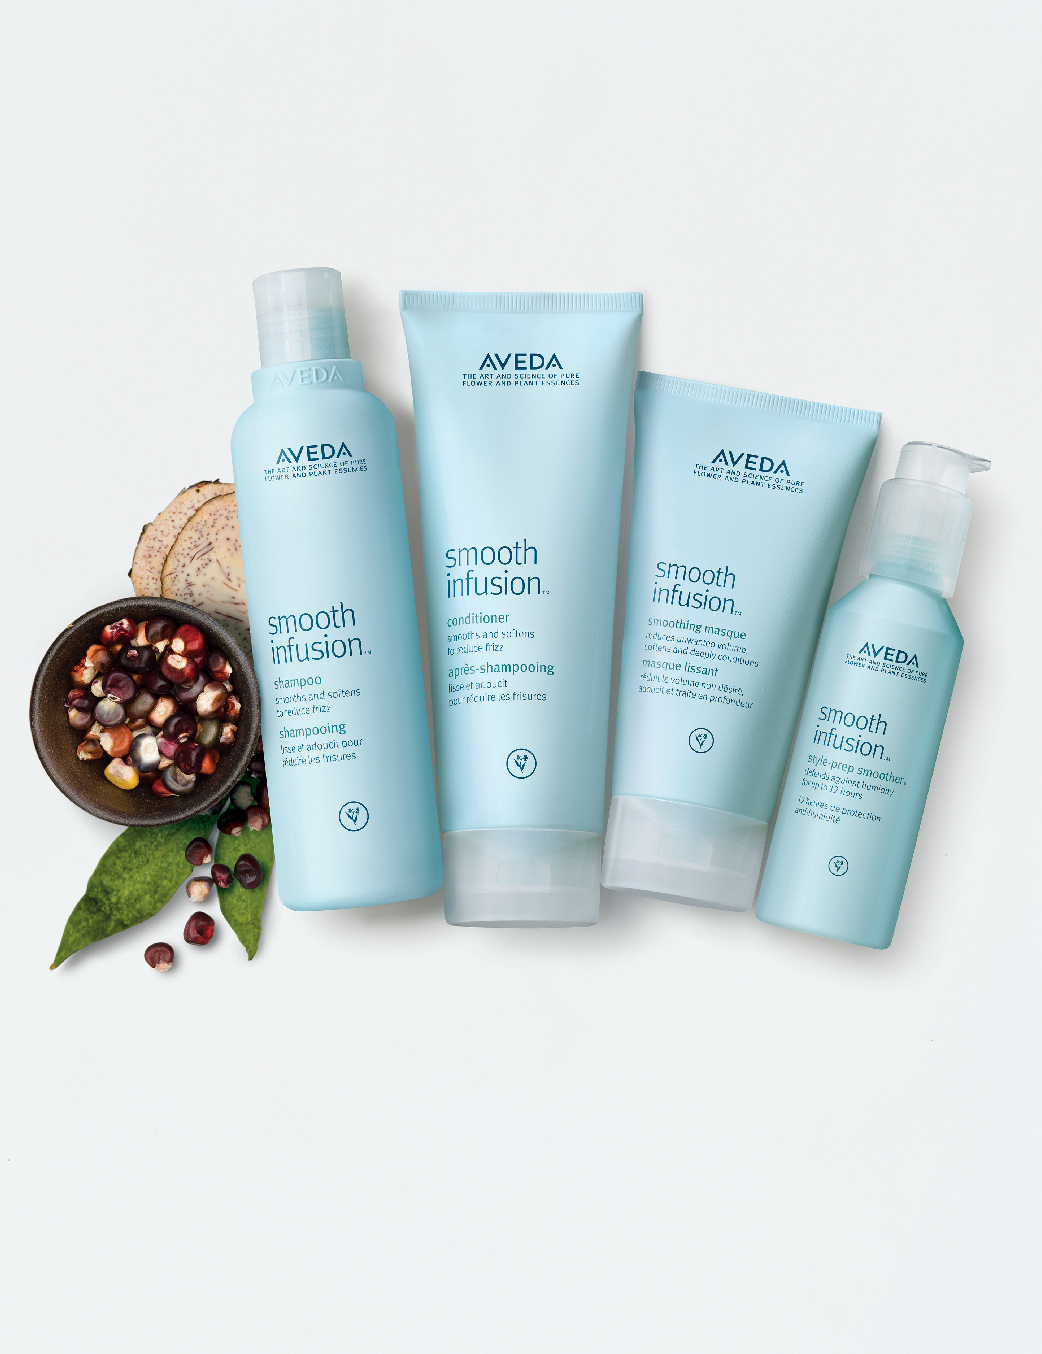 AVEDA Smooth Infusion™ range...